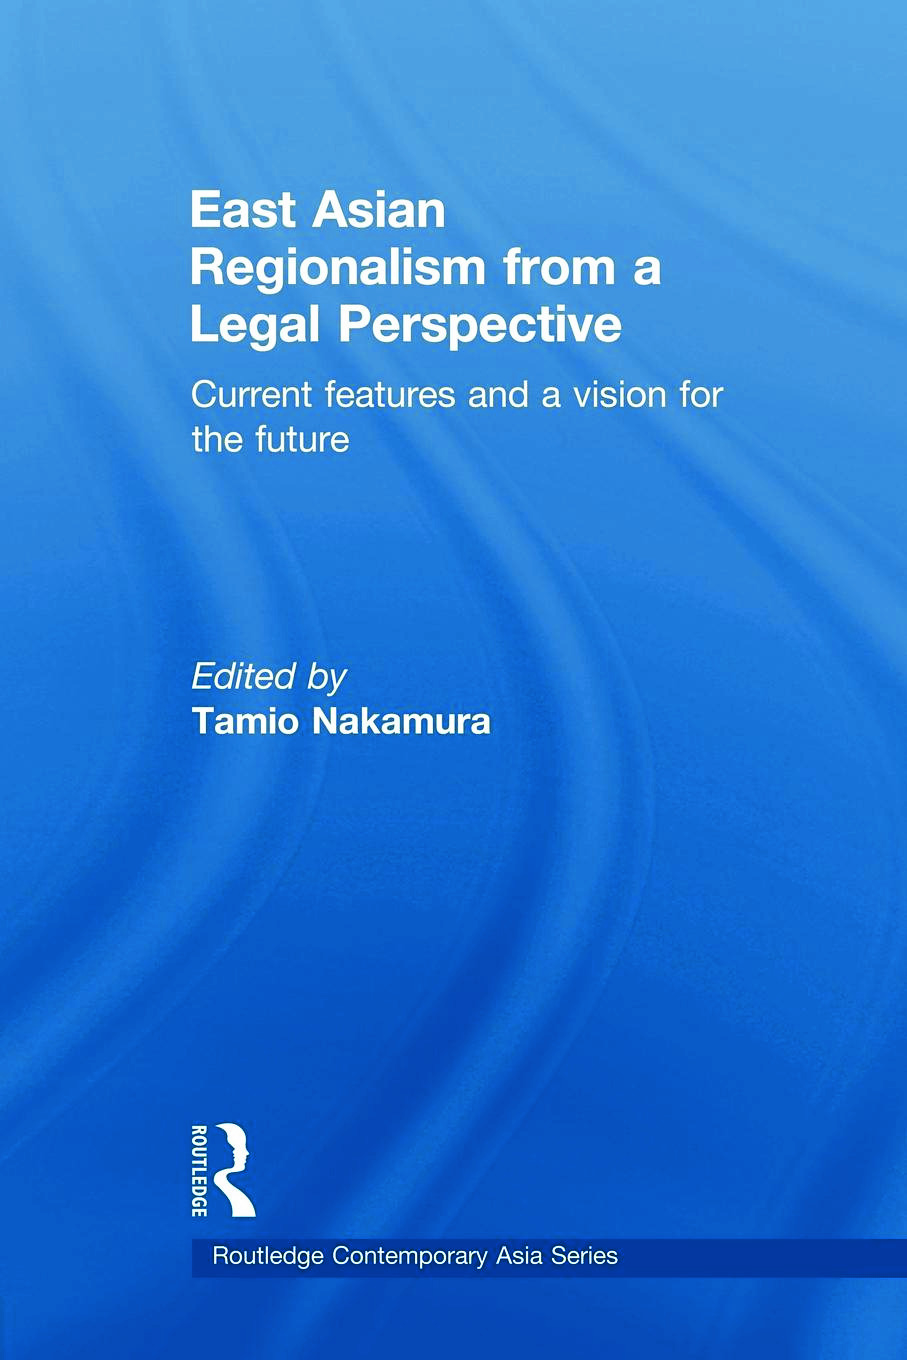 Regional integration in East Asia and its legalization: Can law contribute to the progress of integration in East Asia?